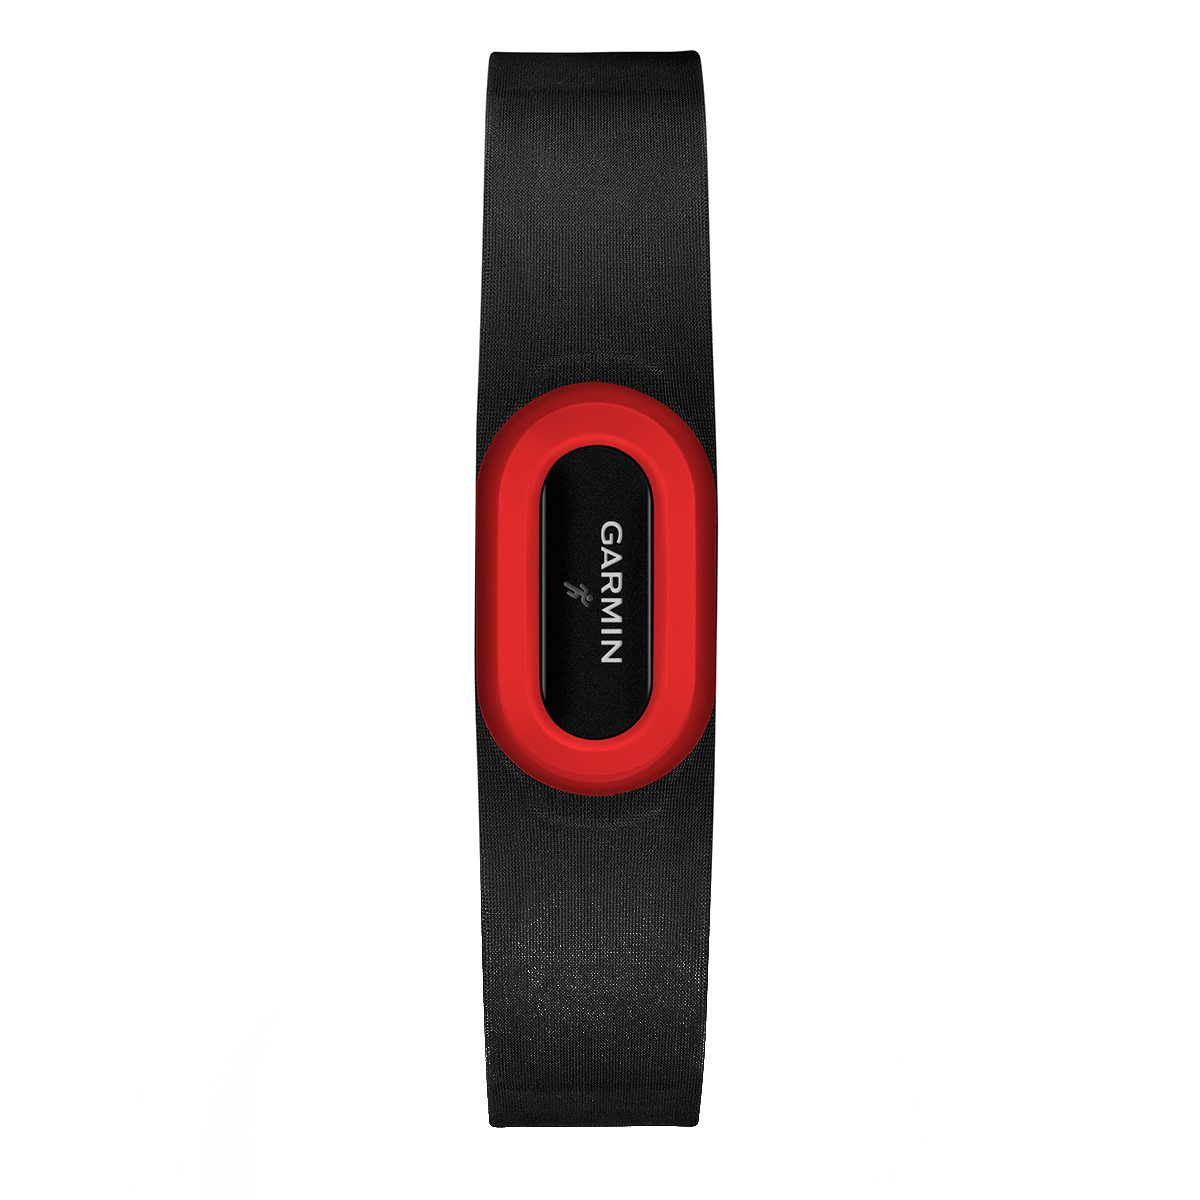 Garmin HRM4-Run Heart Rate Monitor - Color: Black/Red - Size: One Size, Black/Red, large, image 1